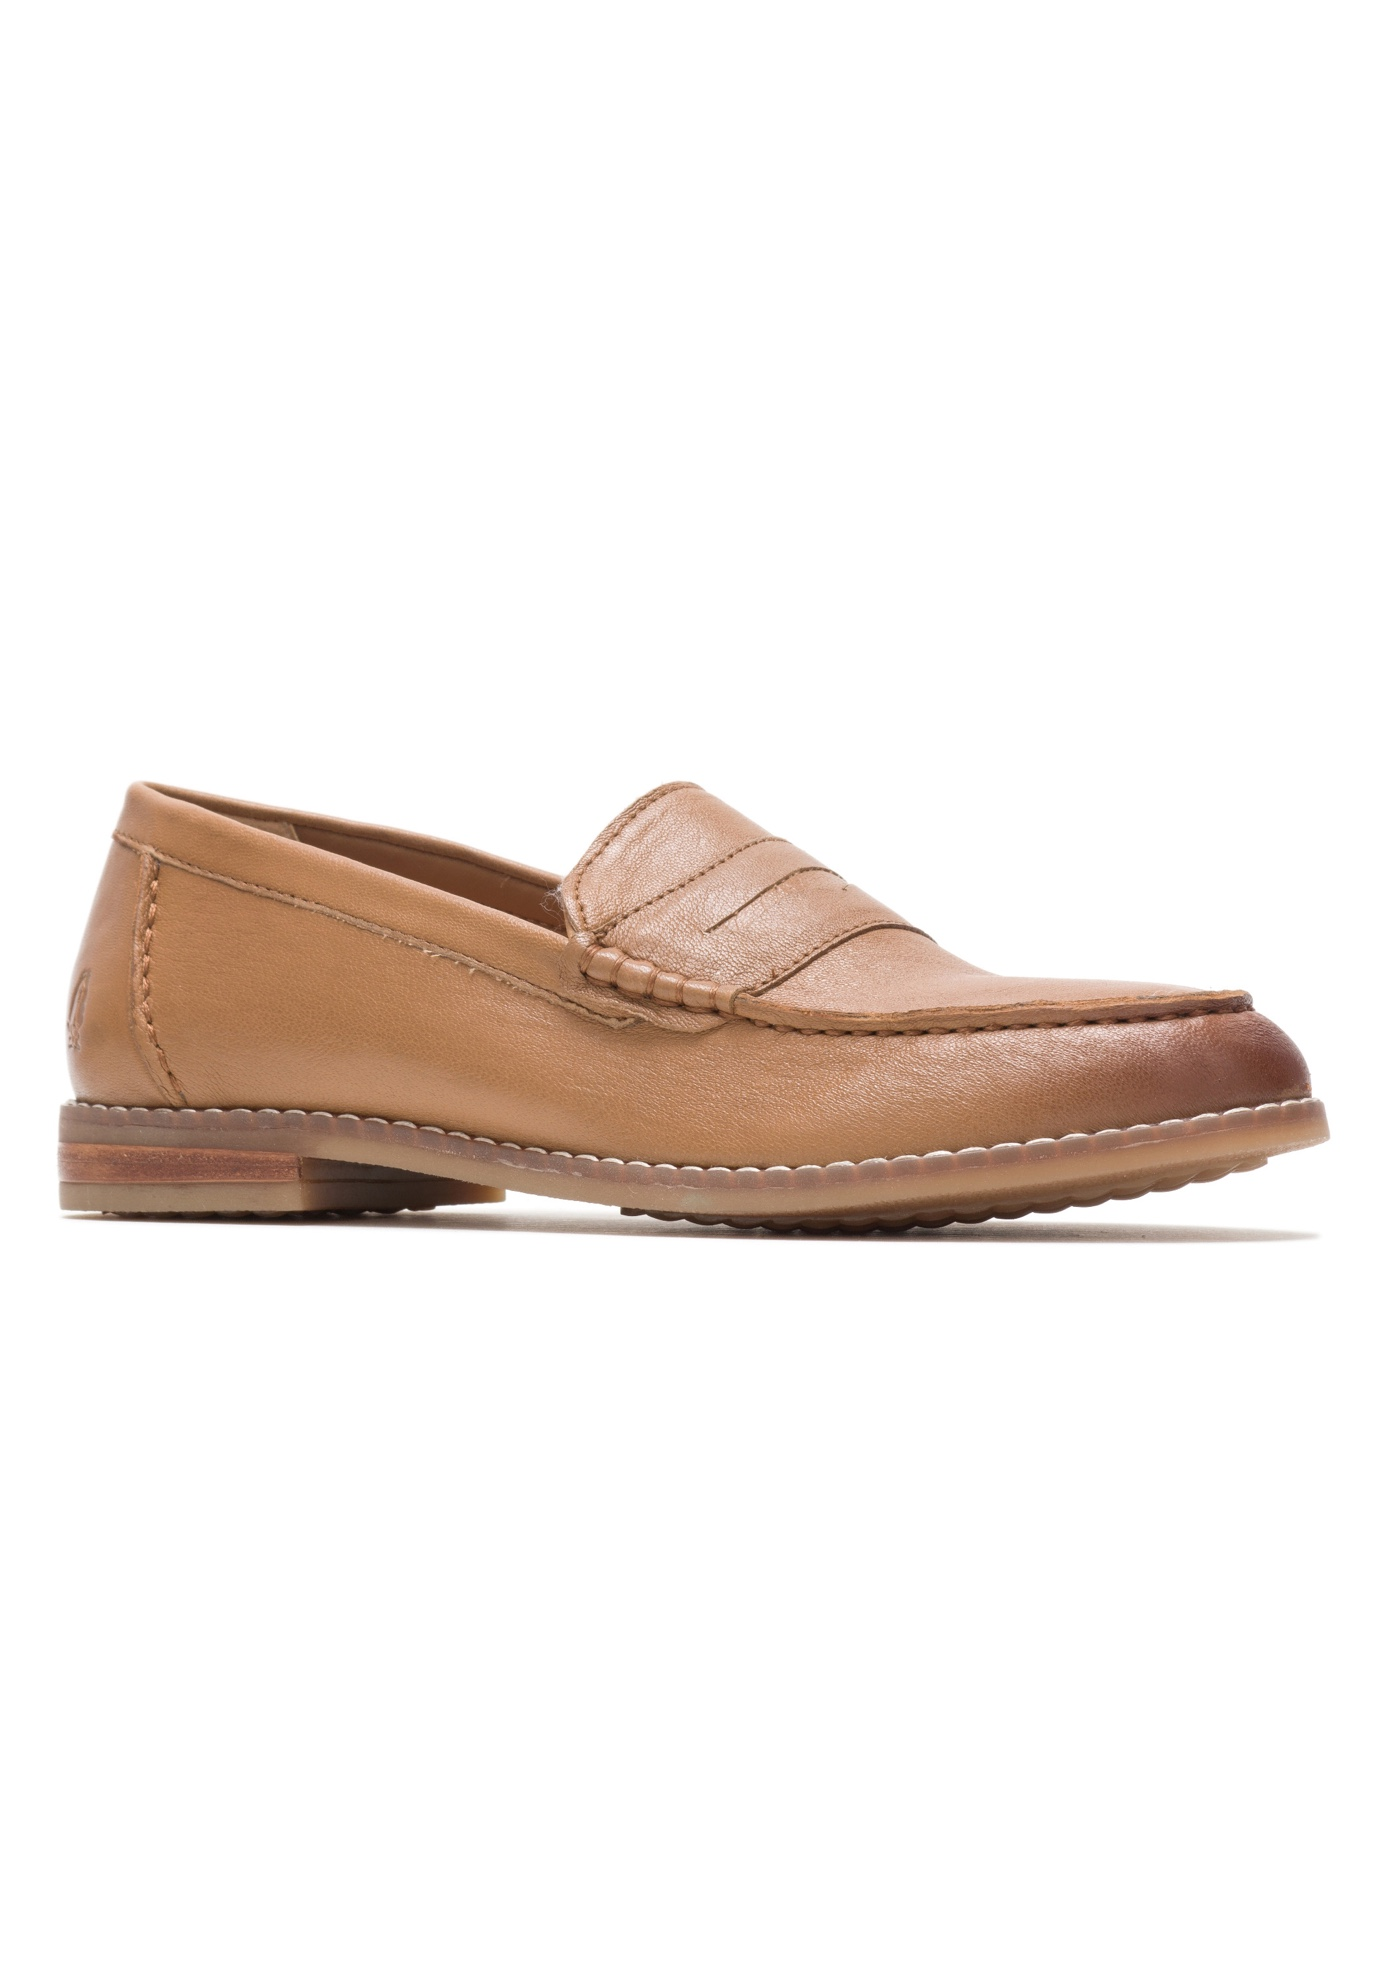 Waren Loafer by Hush Puppies,